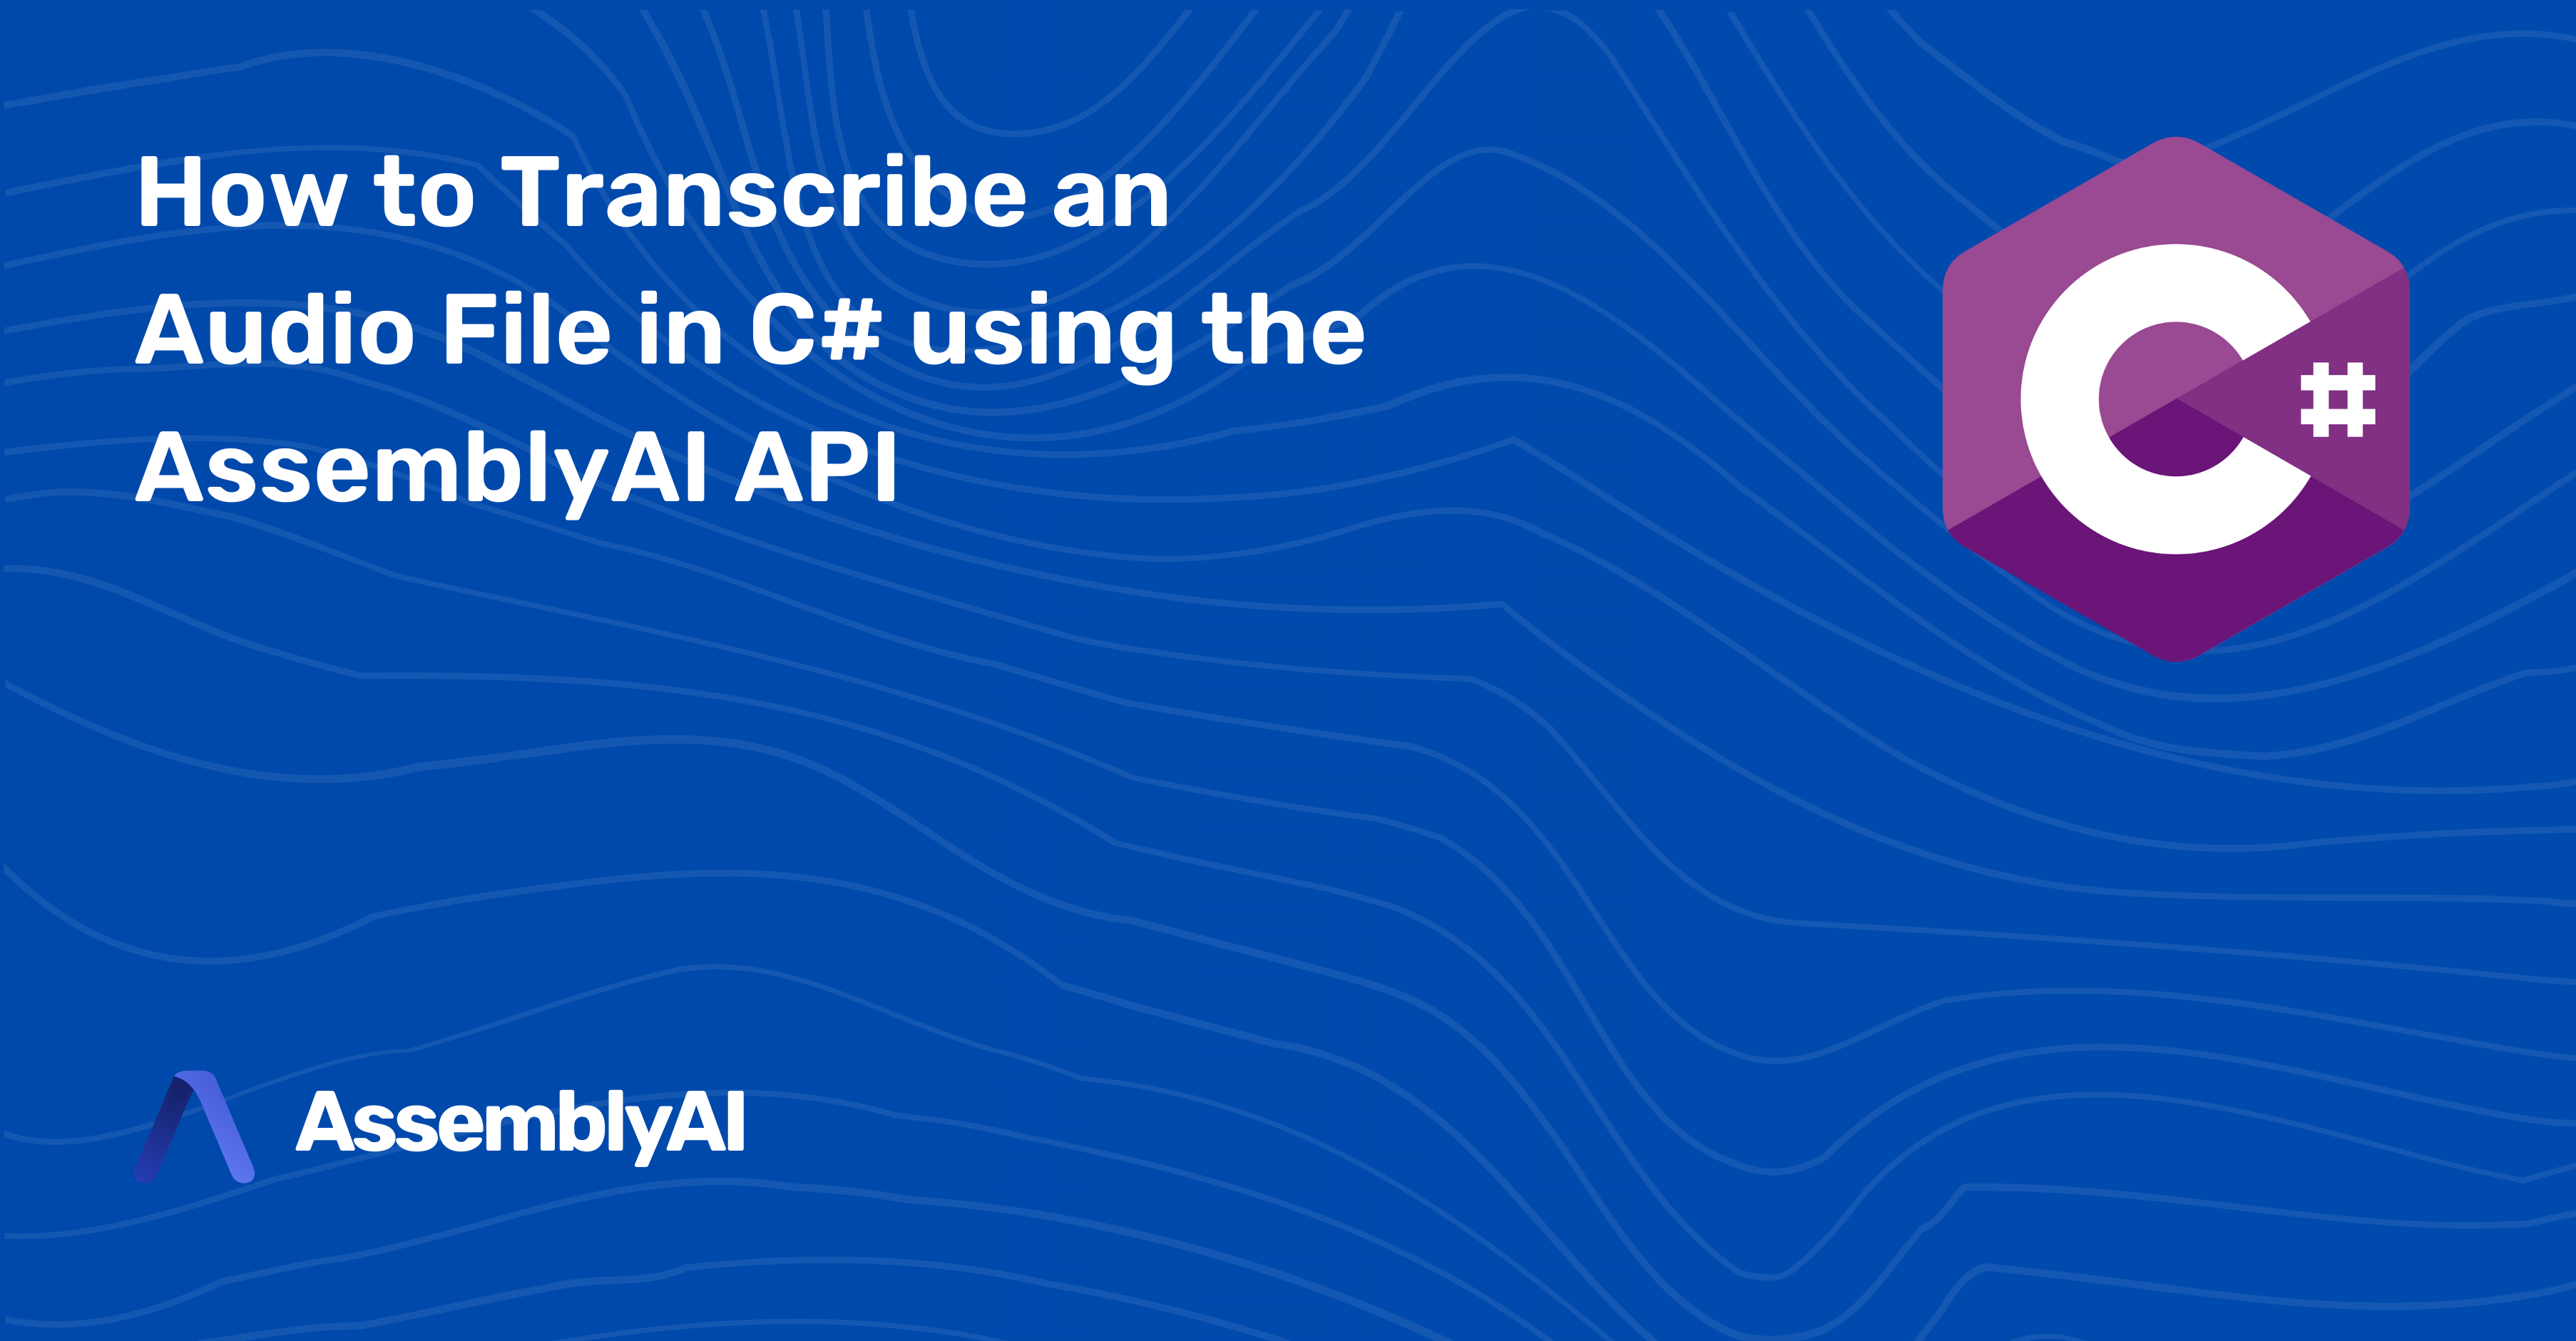 How to Transcribe an Audio File in C# using the AssemblyAI API